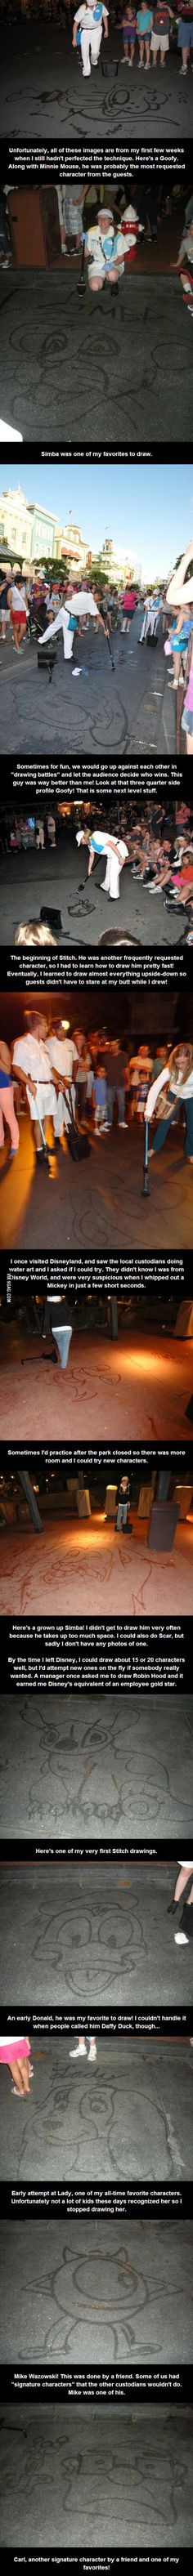 As a janitor at Disney World, she drew characters with water and a broom on the sidewalk to entertain guests. disney parks